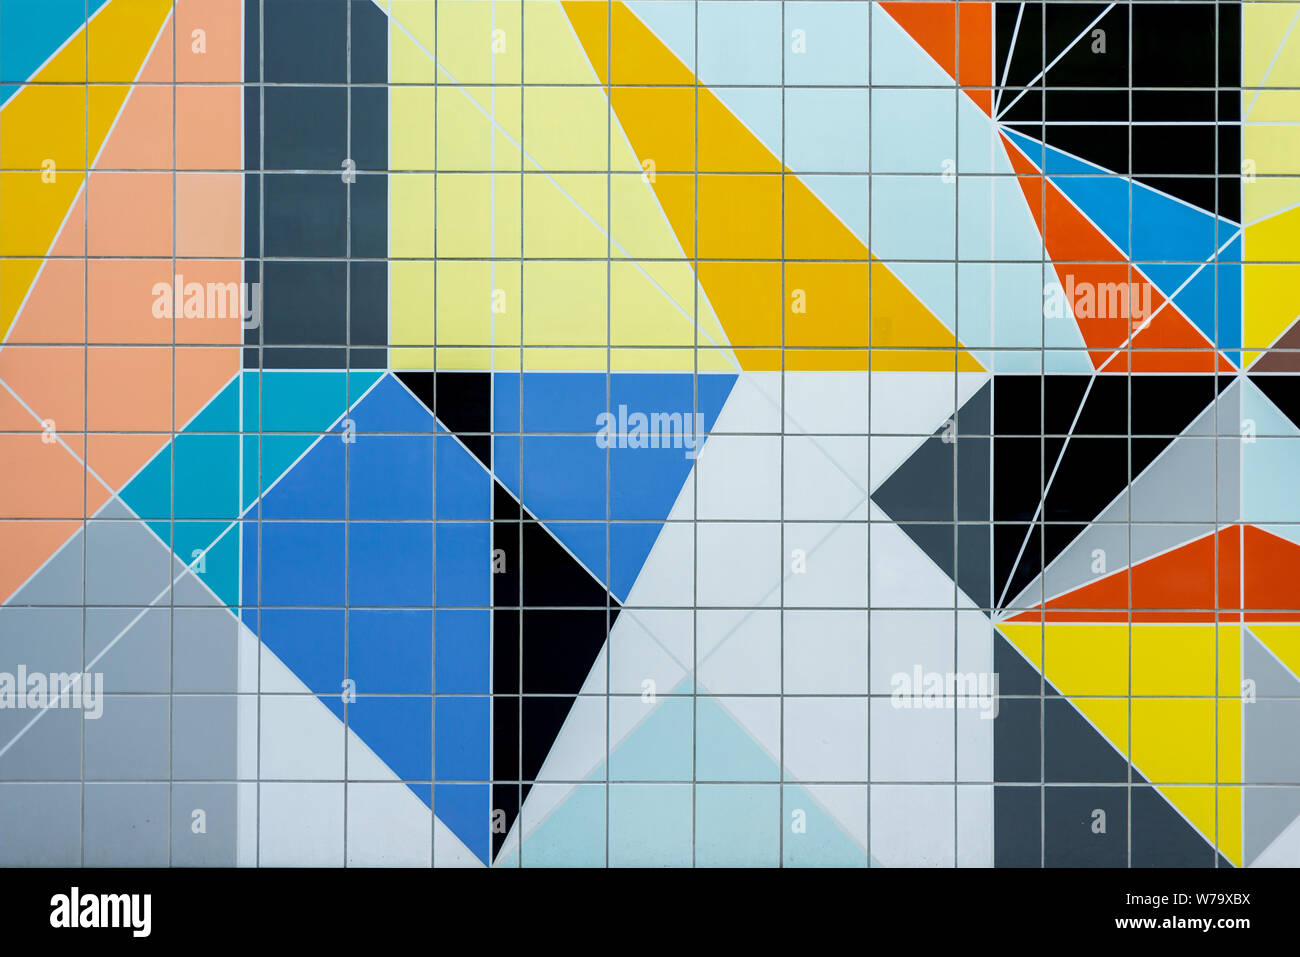 https www alamy com grid square ceramic tile wall with colourful geometric shape and form random pattern with minimal modern post modern bauhaus style image262676398 html